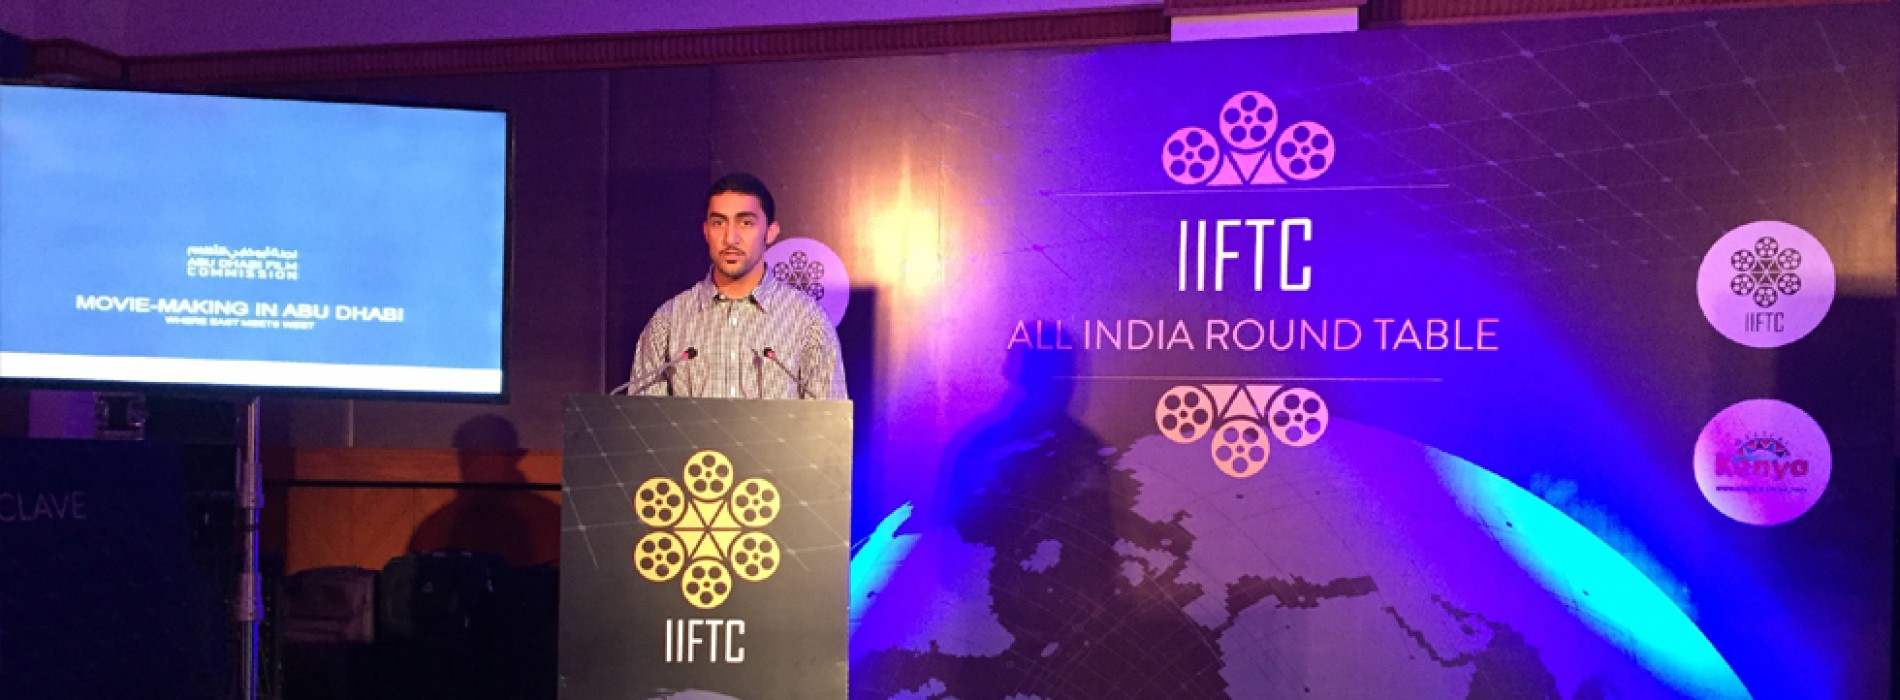 TCA Abu Dhabi Film Commission attend India International Film Tourism Conclave